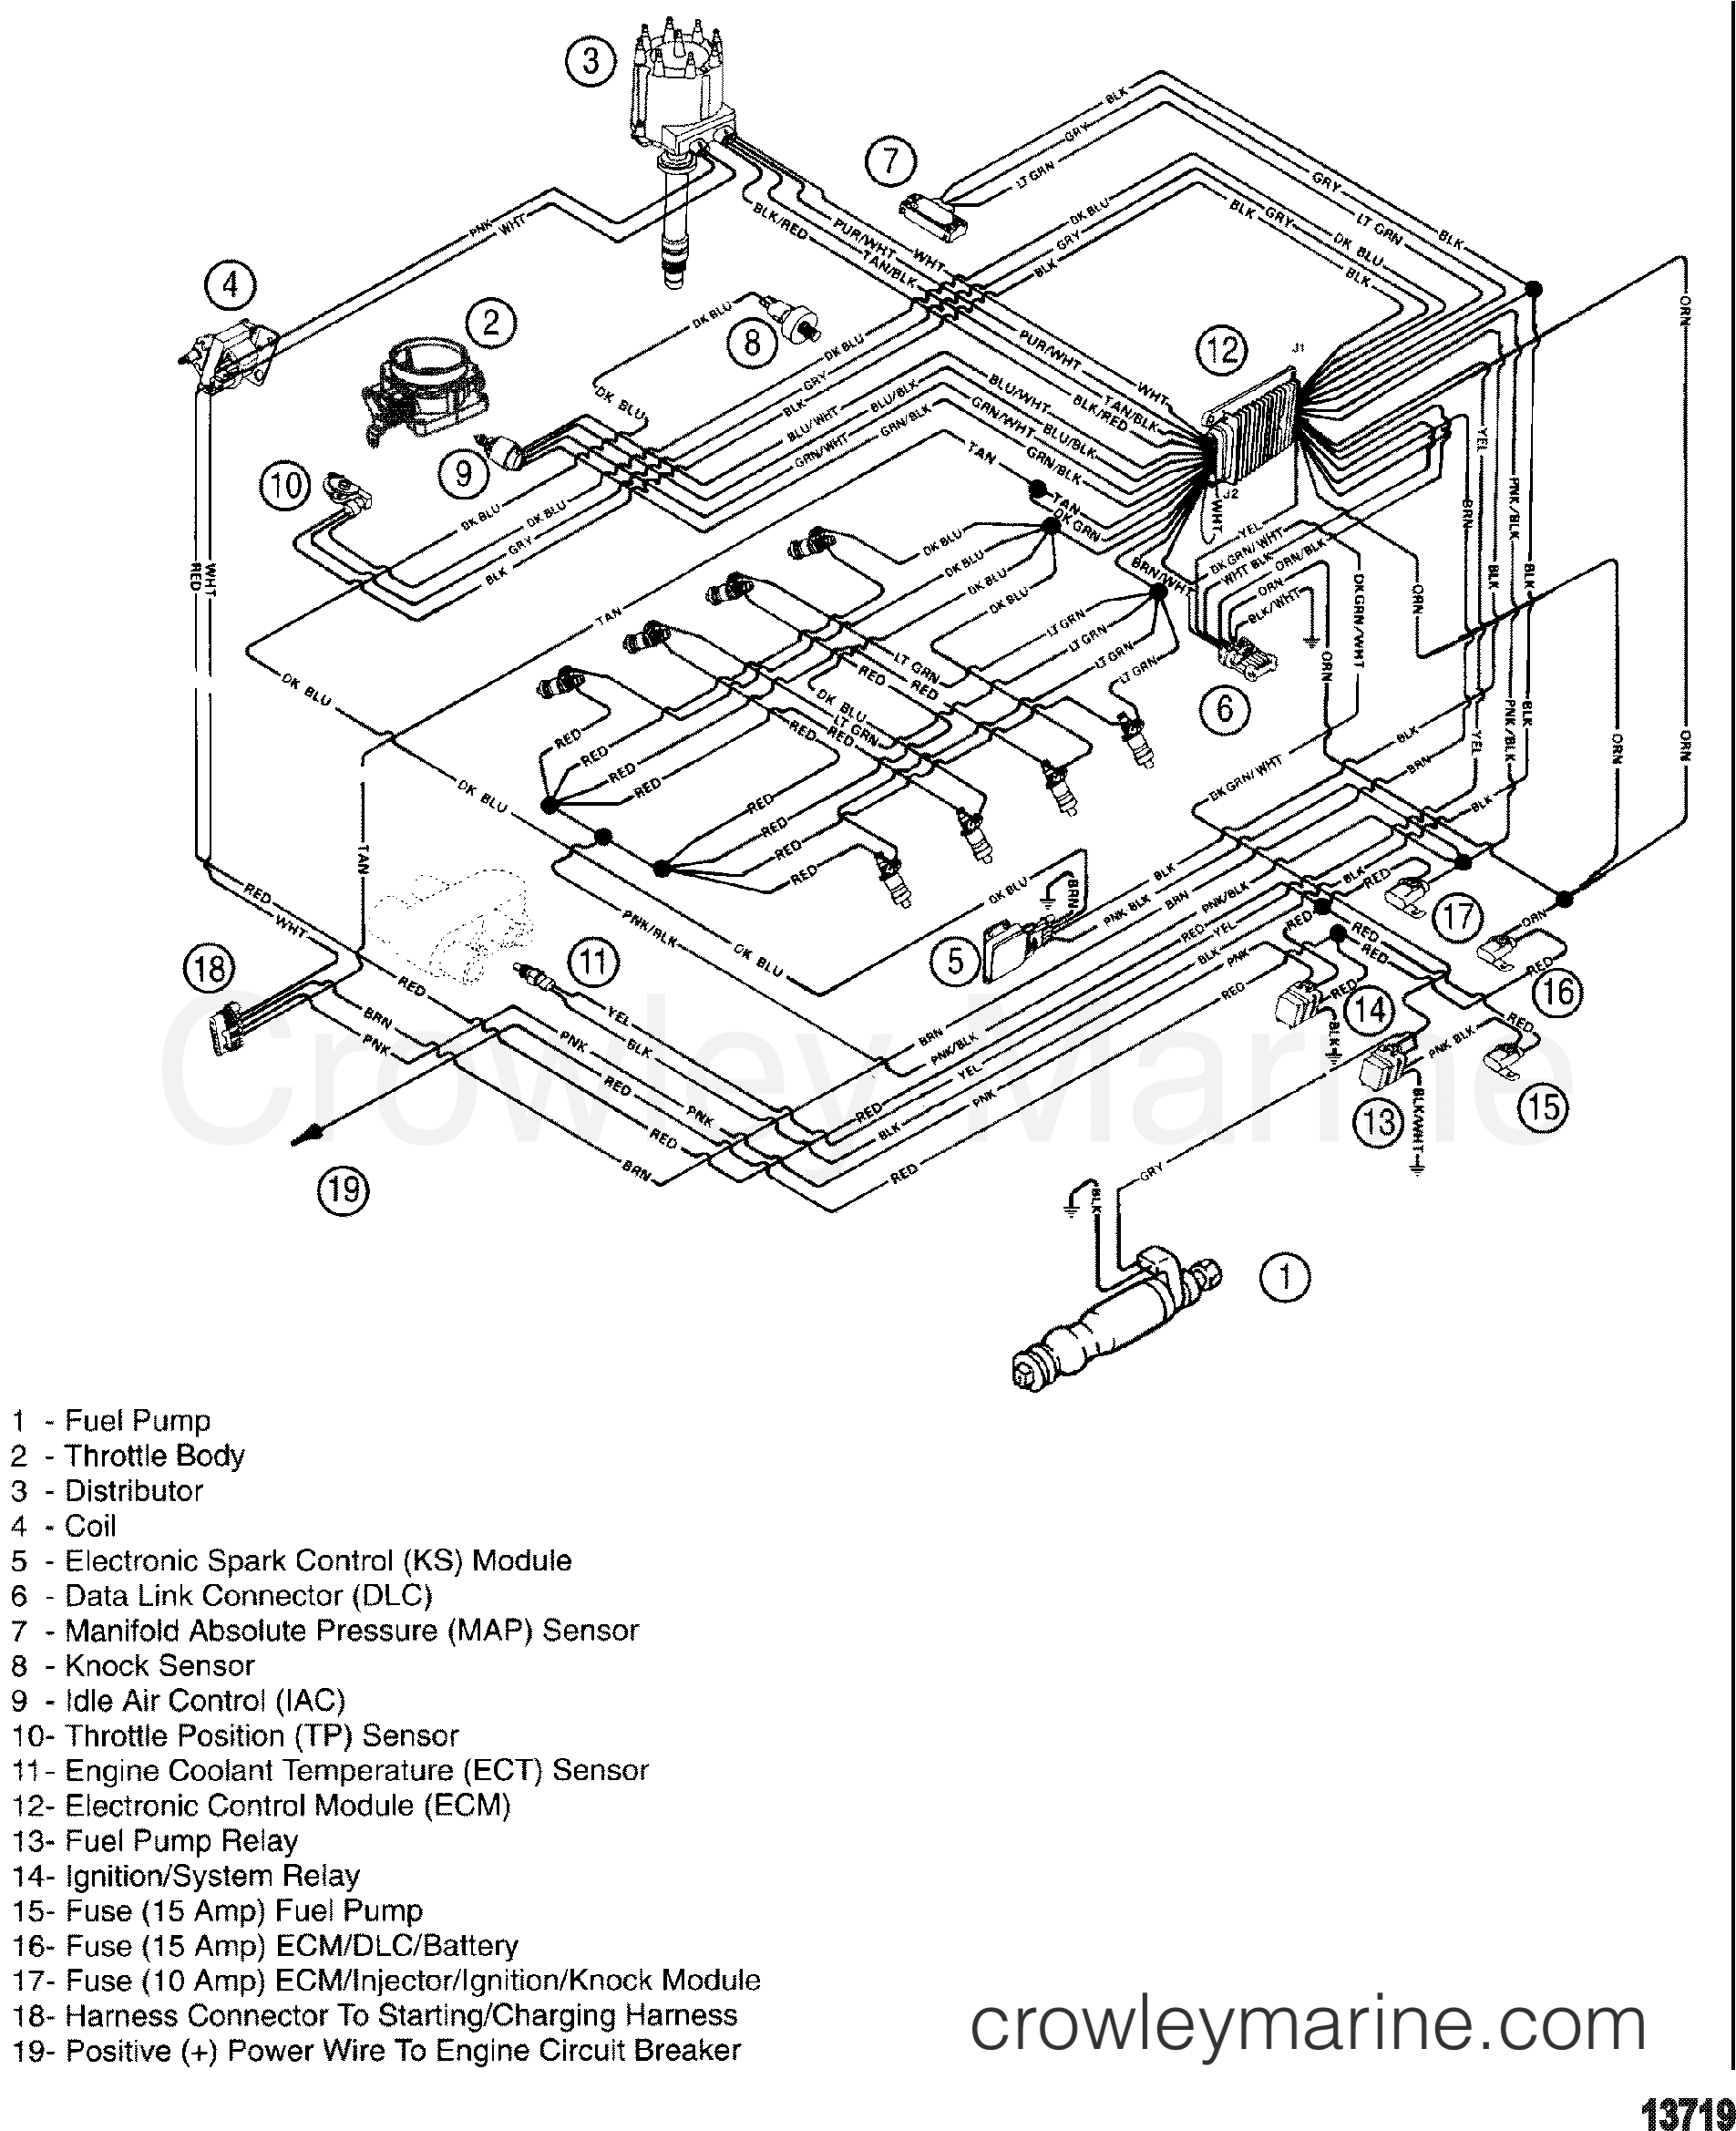 hight resolution of 1998 f250 engine wiring harness